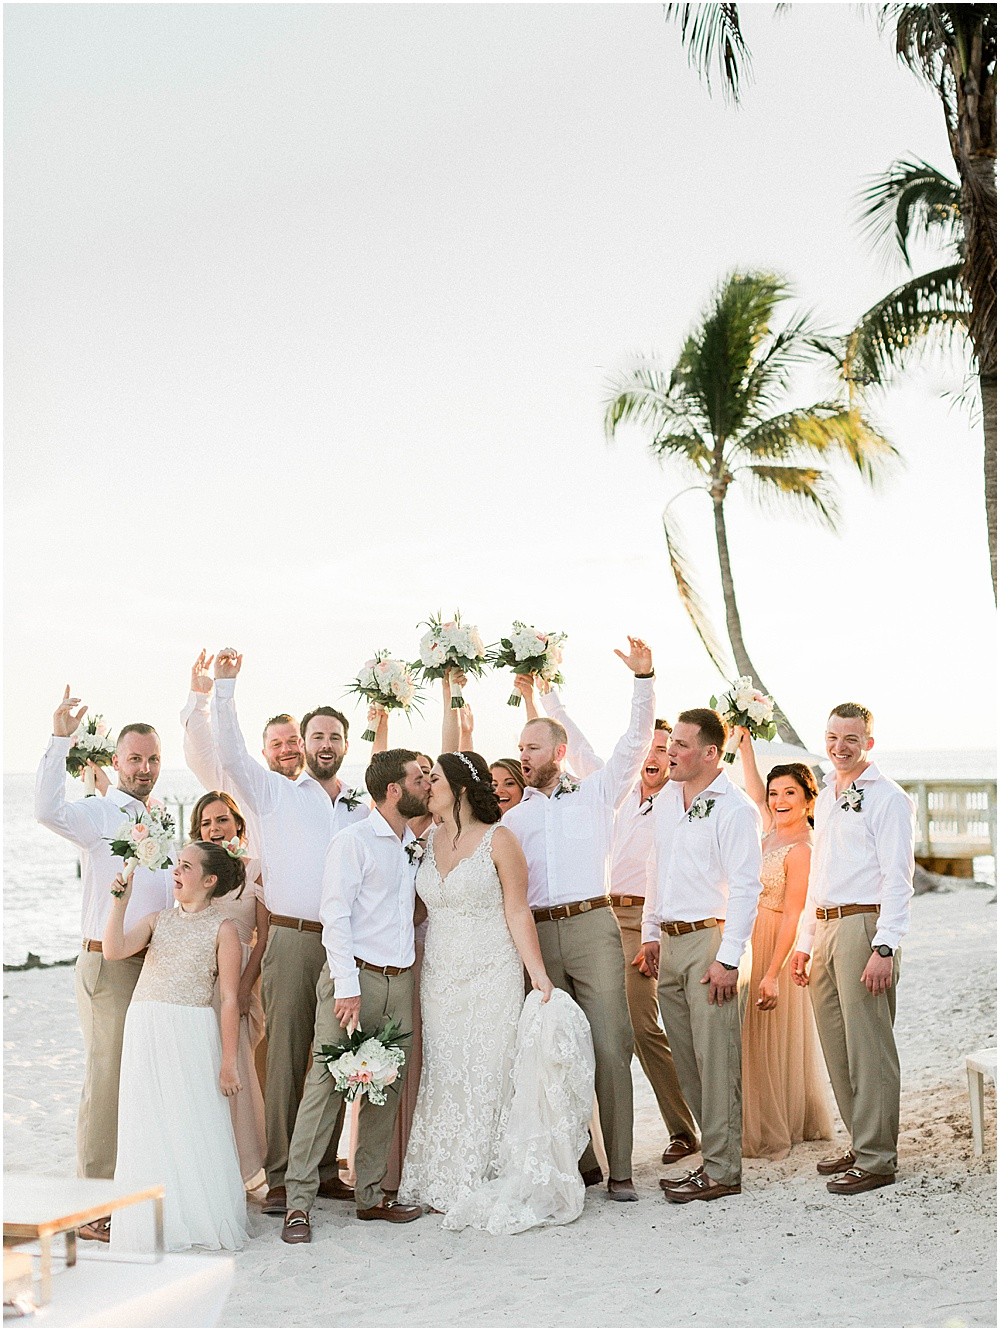 casa_marina_key_west_florida_destination_palm_trees_boston_wedding_photographer_meredith_jane_photography_photo_0107.jpg